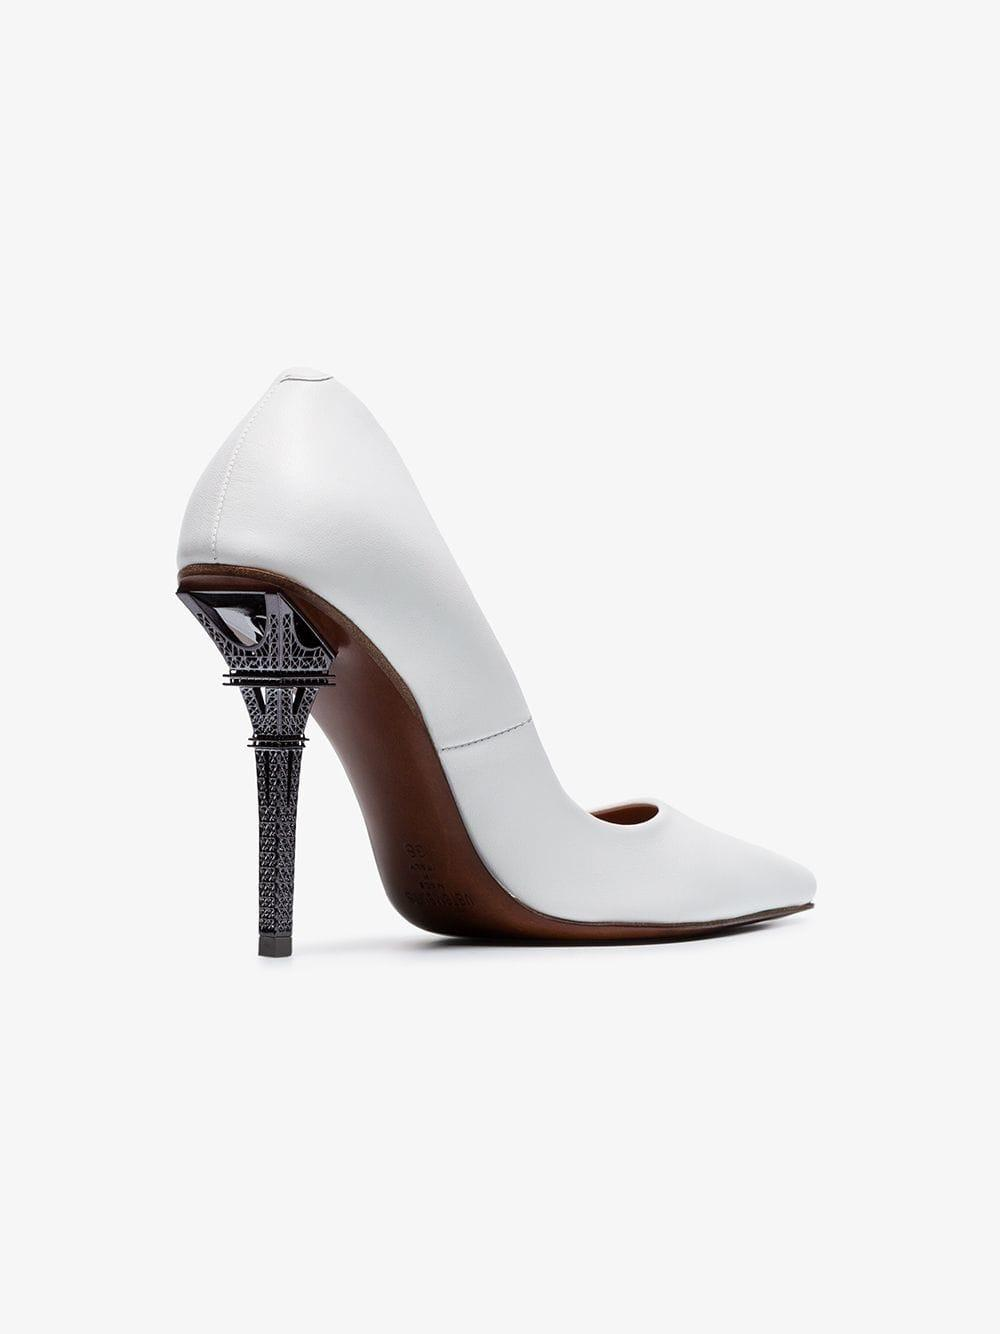 065a1309a56 Lyst - Vetements White Eiffel Tower 110 Leather Pumps in White